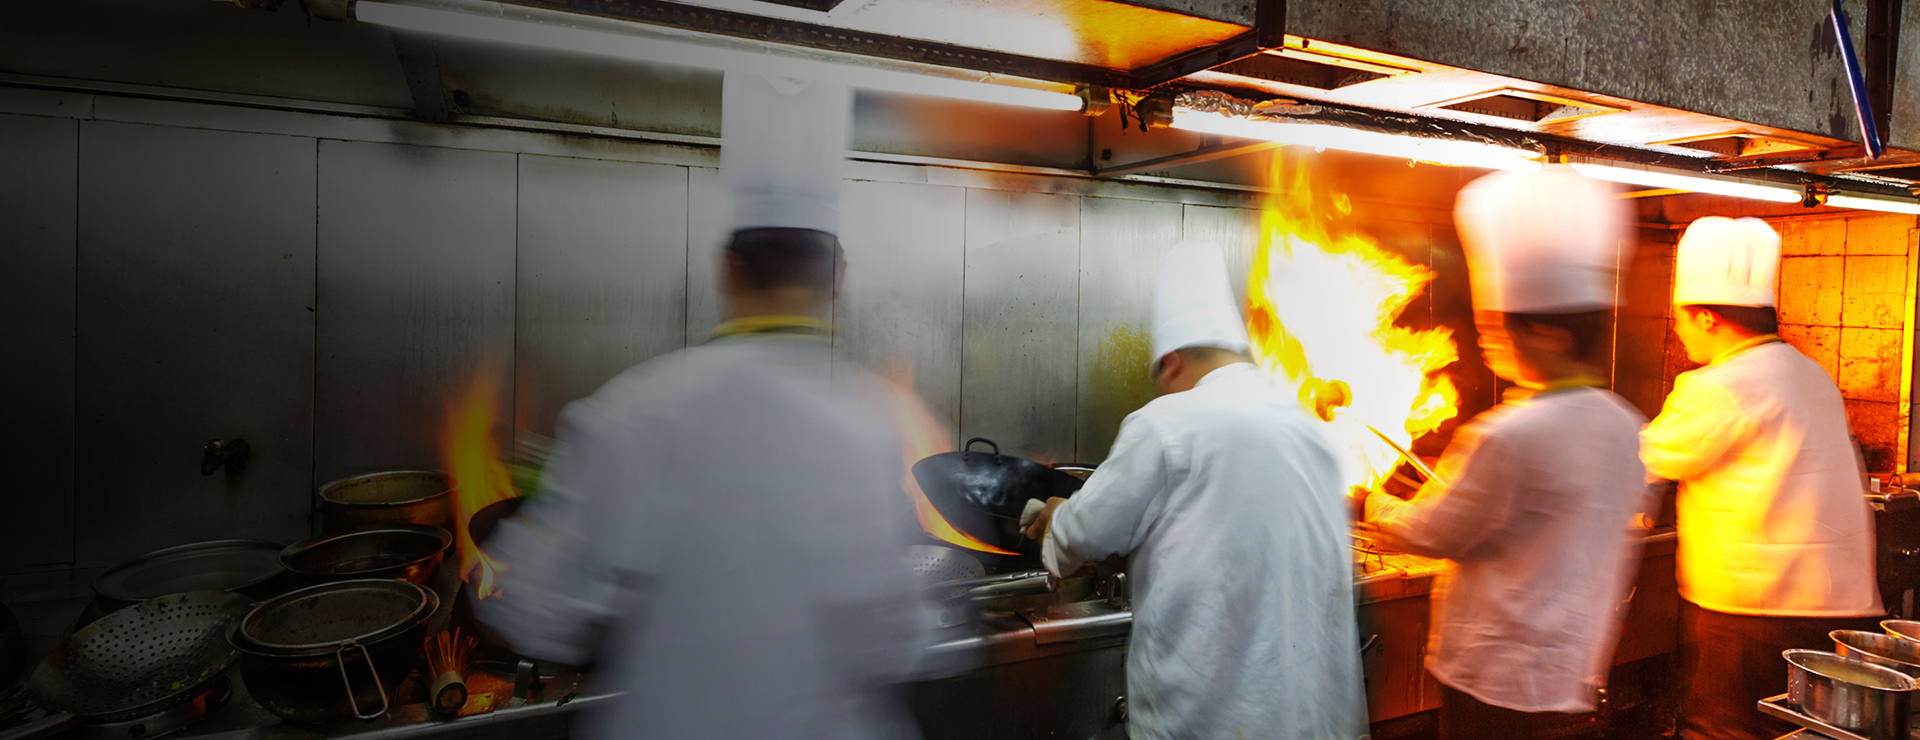 commercial cooking fire suppression